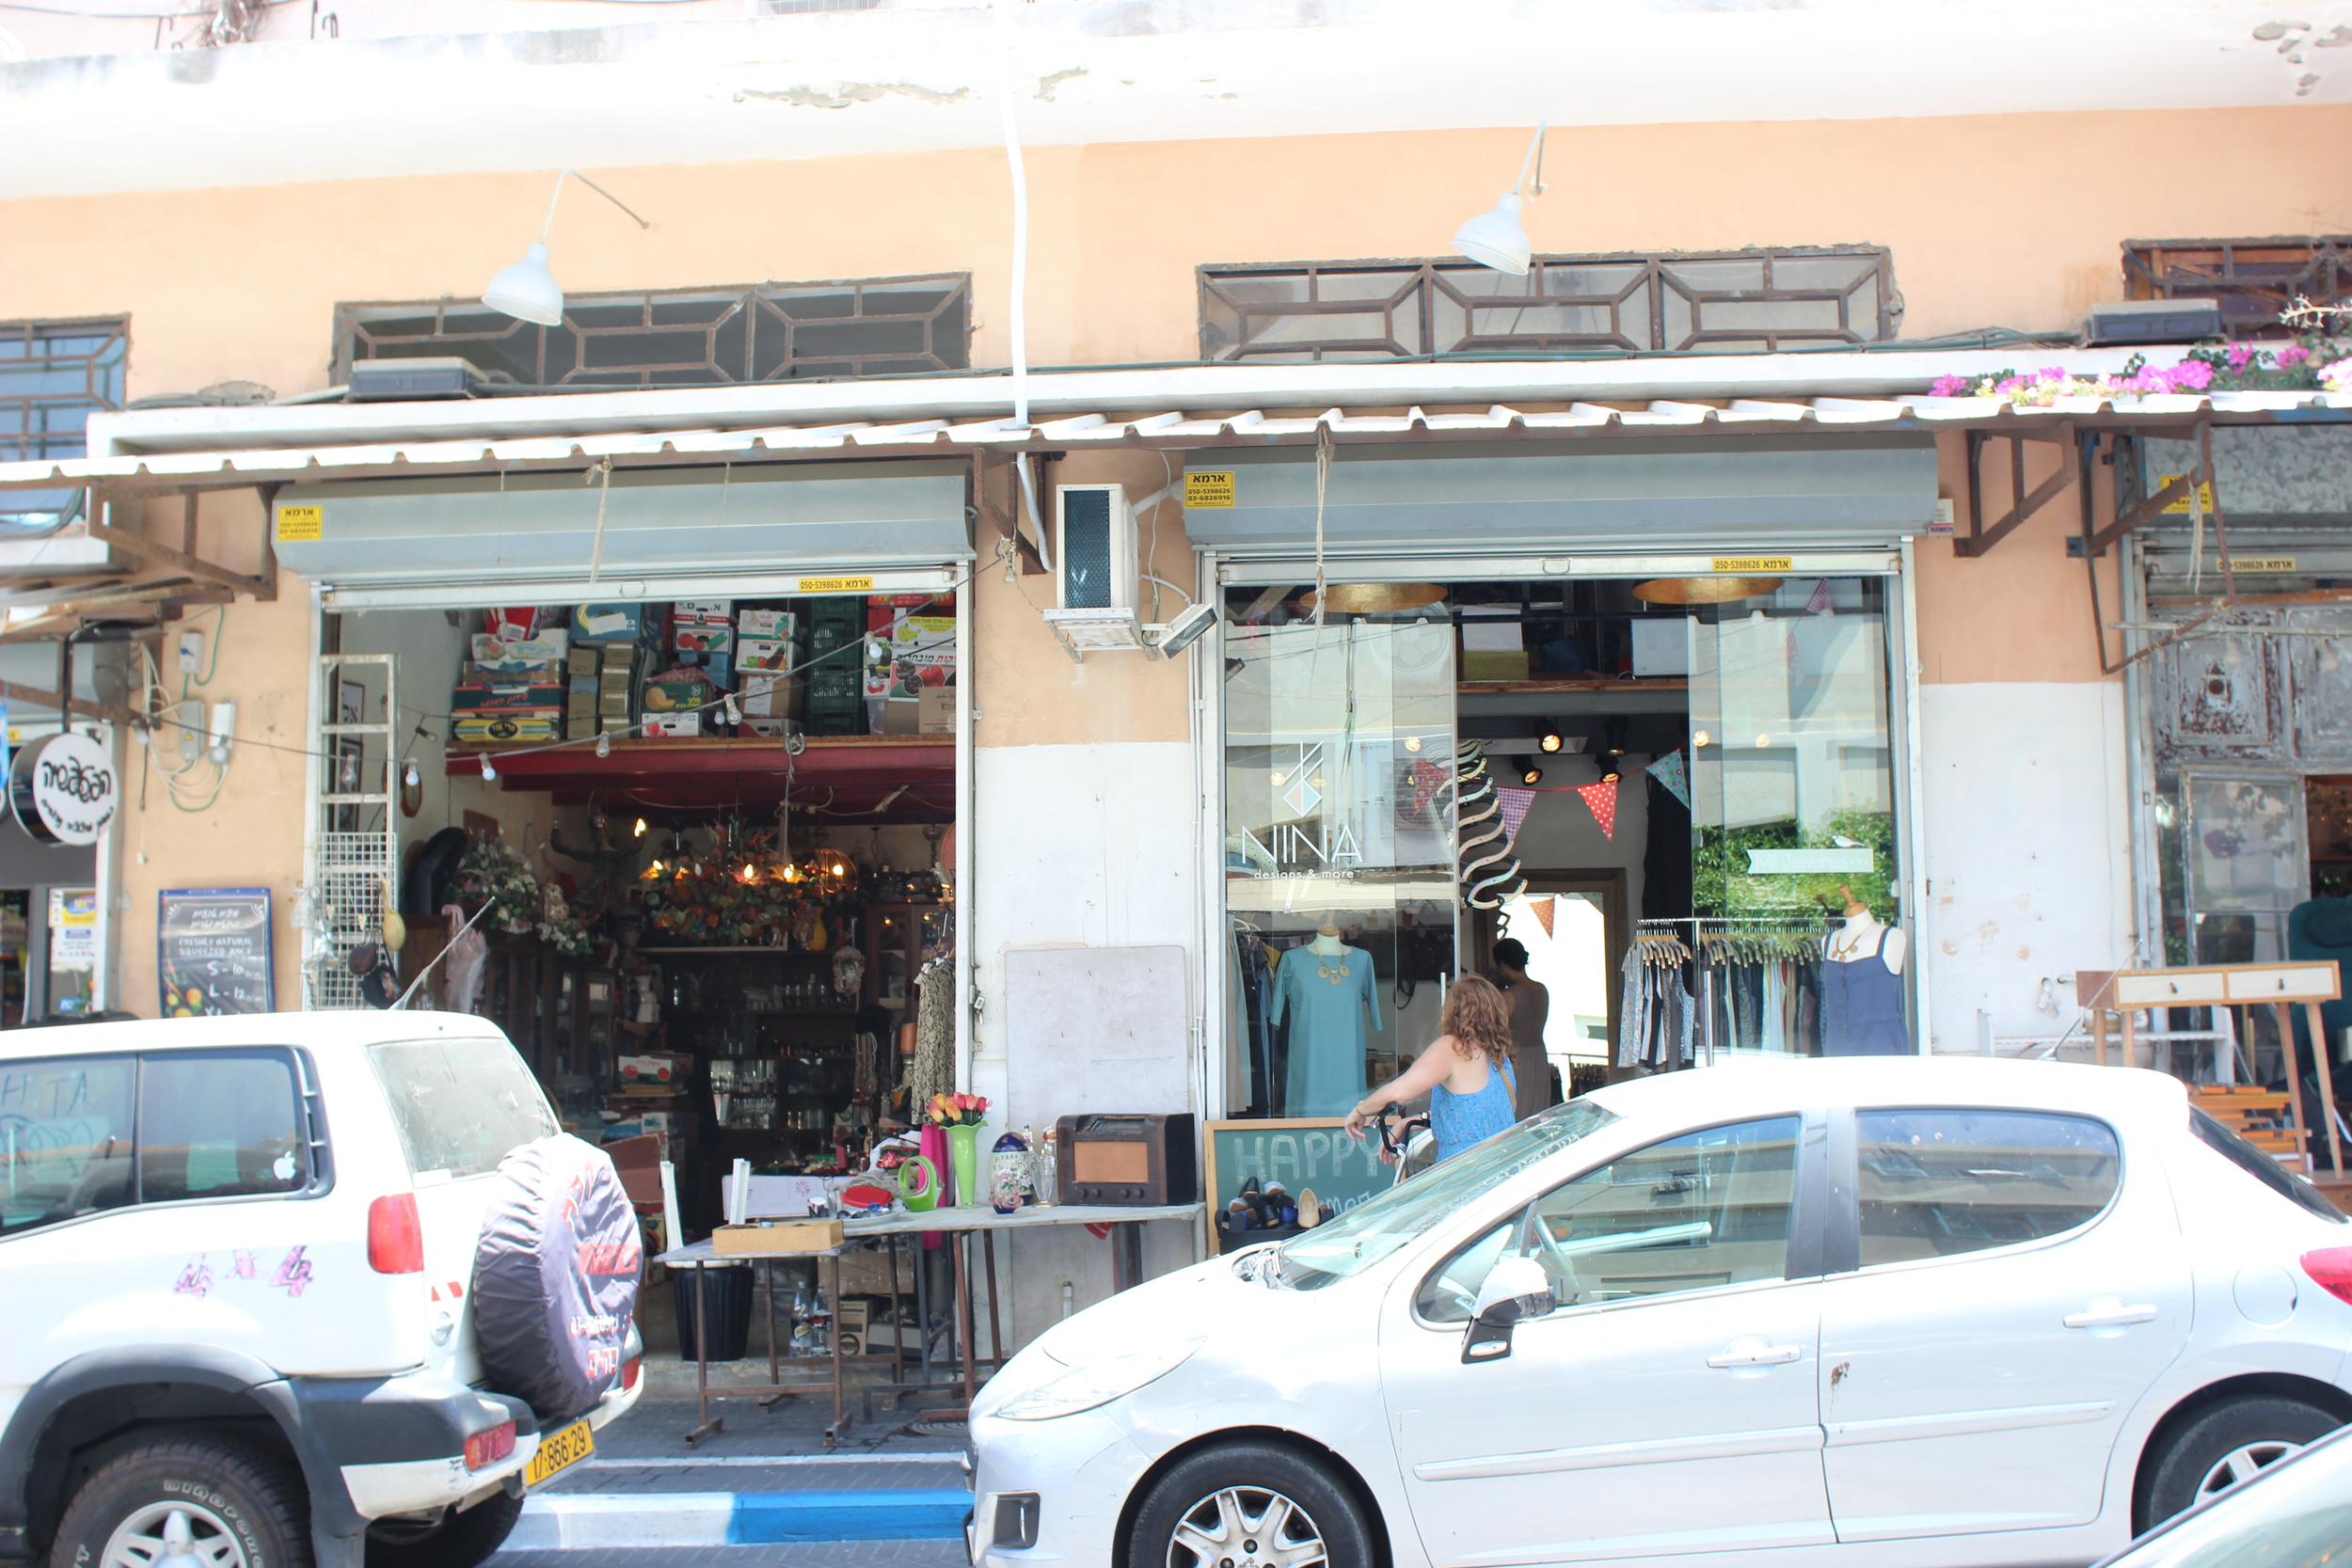 There are tons of little boutiques in Jaffa, Tel Aviv's version of Soho